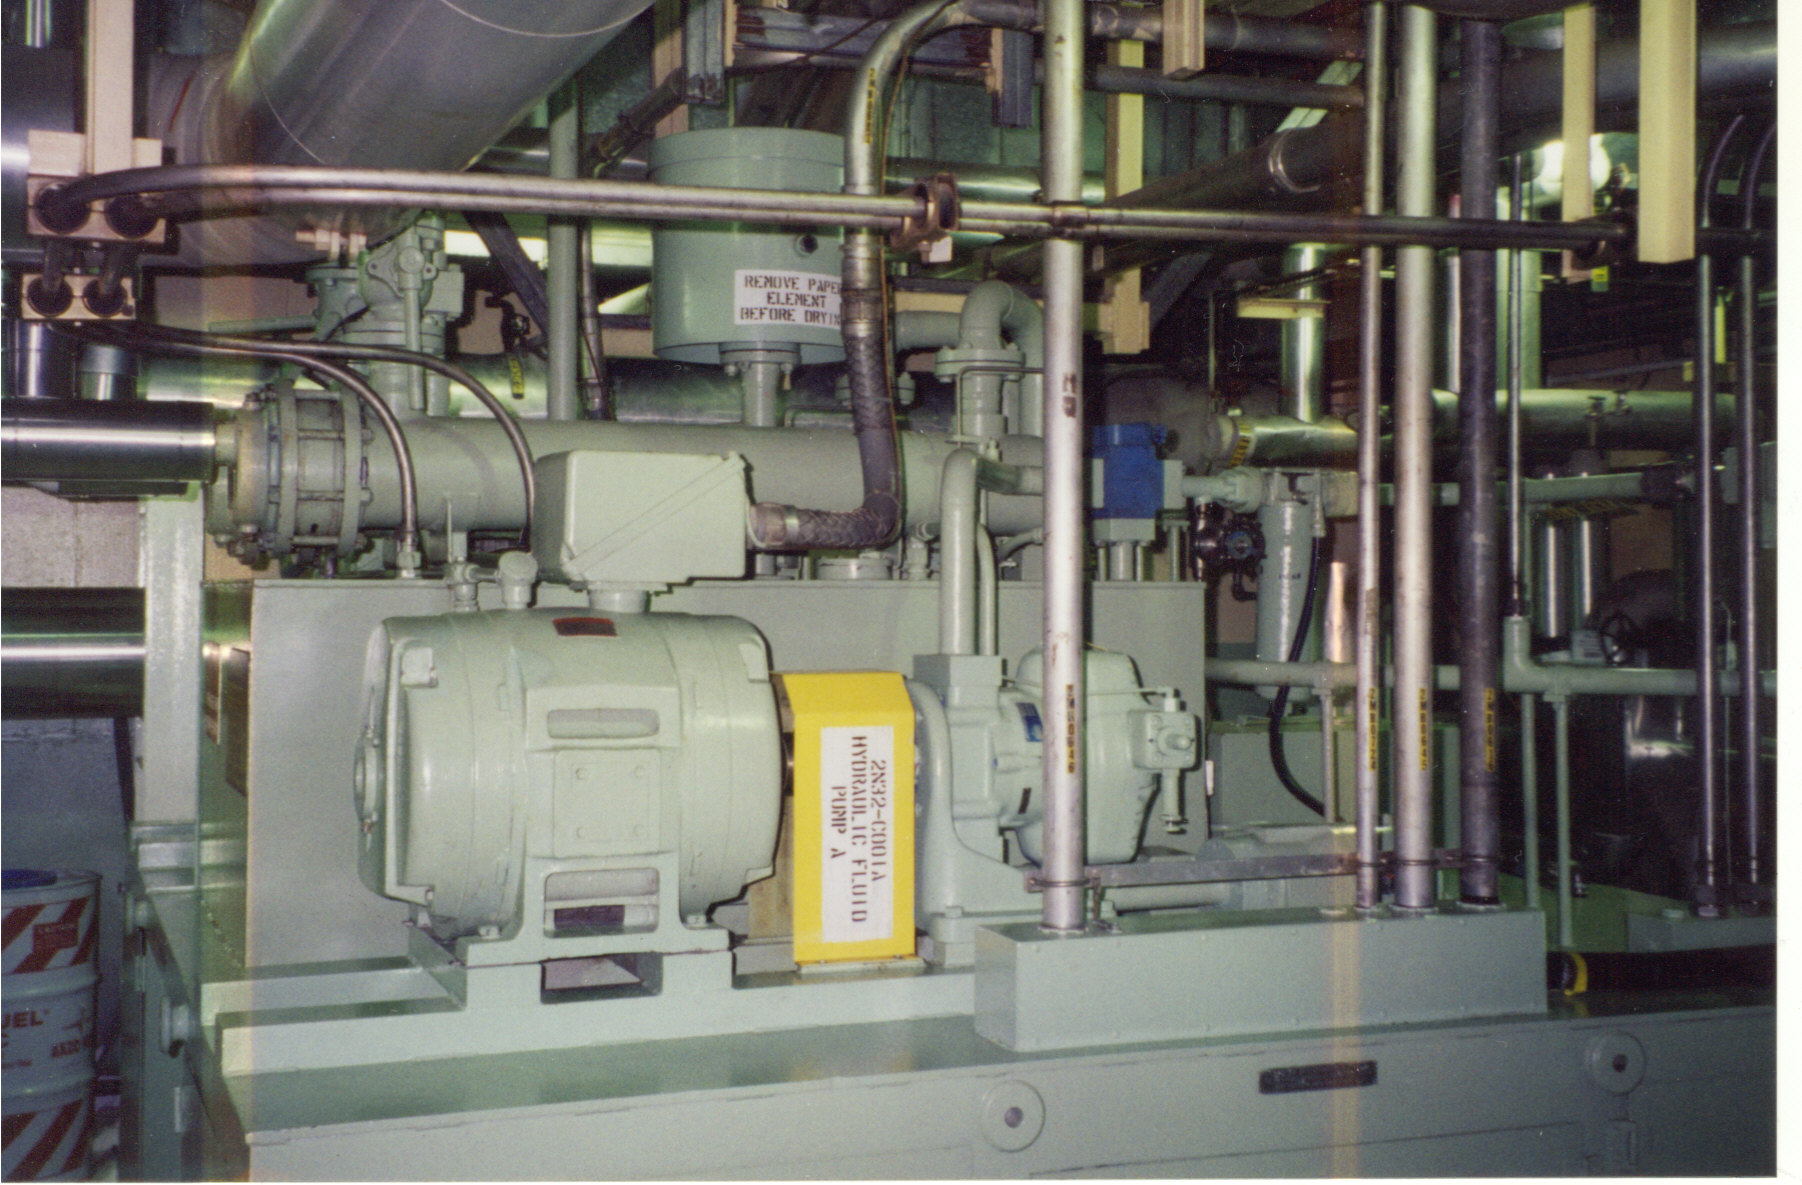 Reservoir using phosphate ester electro-hydraulic control (EHC) Fluids